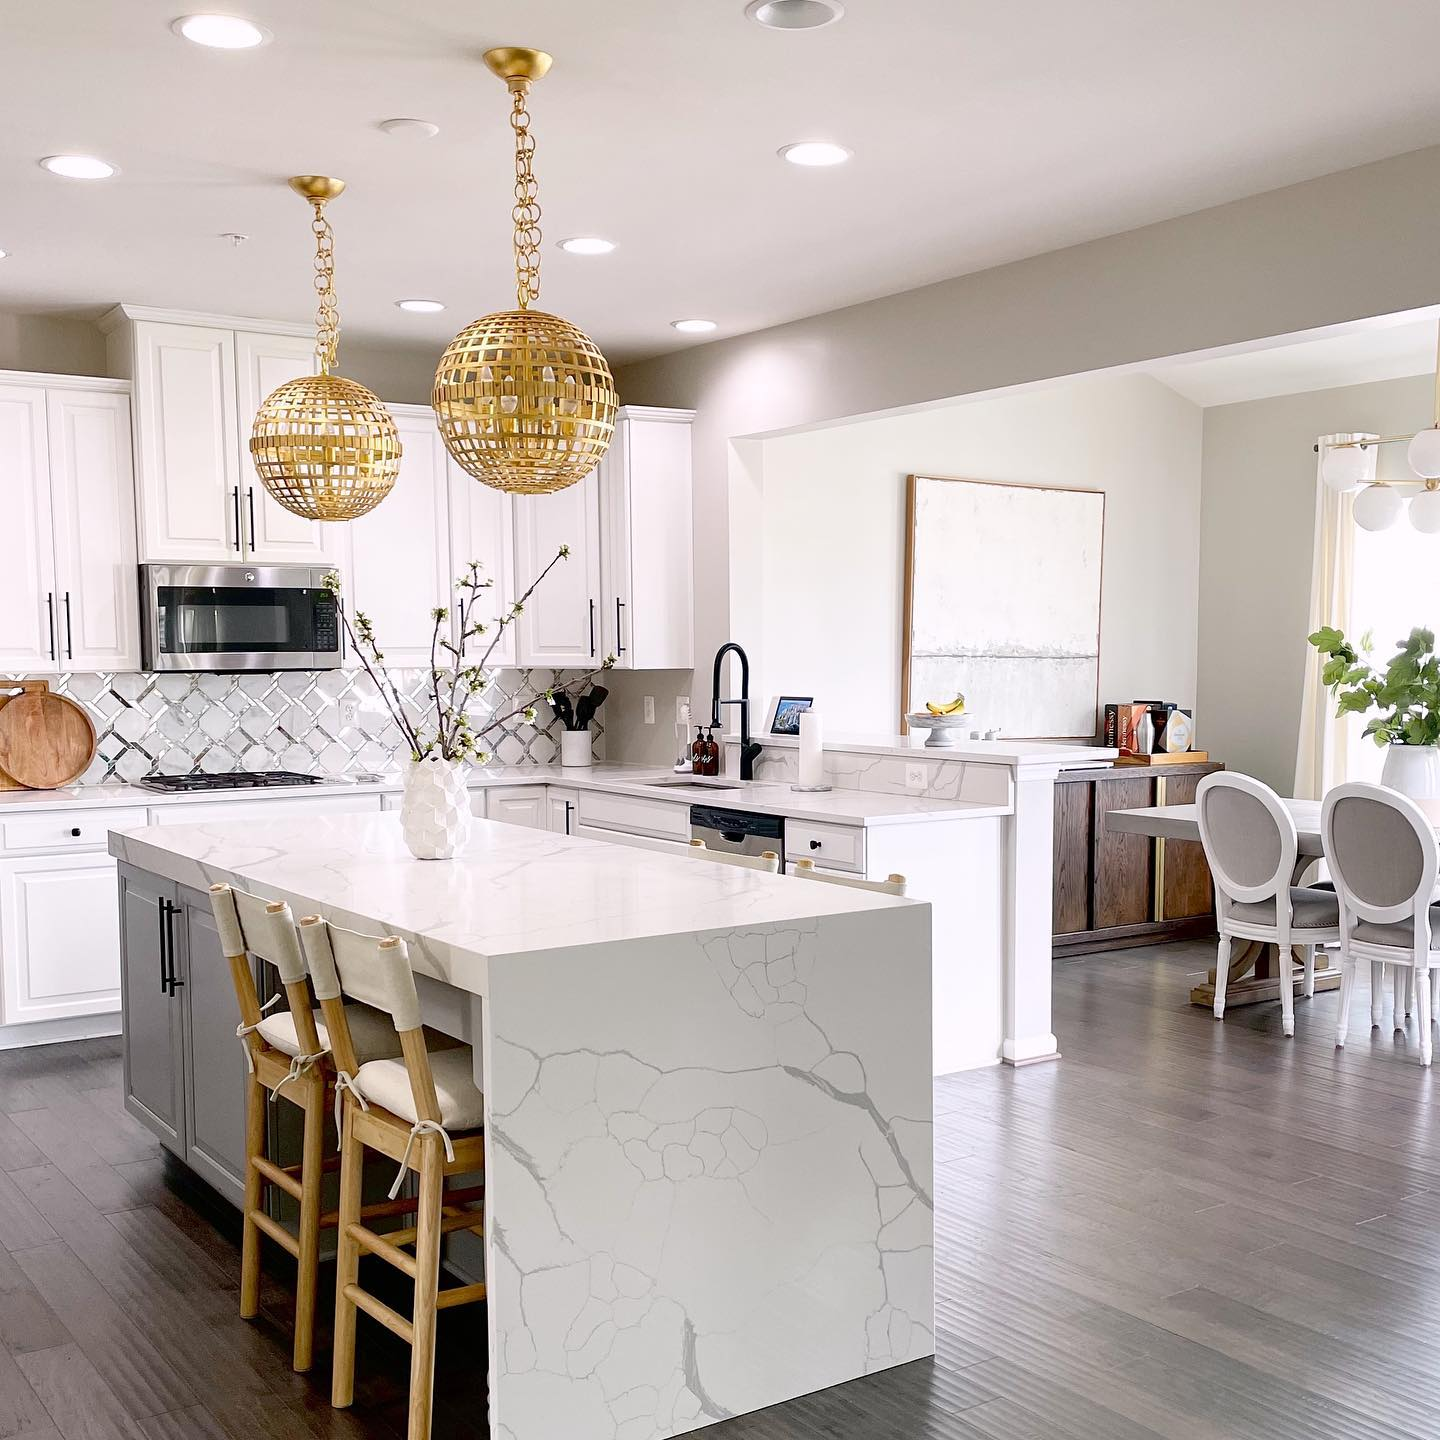 Inspiring ideas for upgrading your kitchen with floor tile and ...